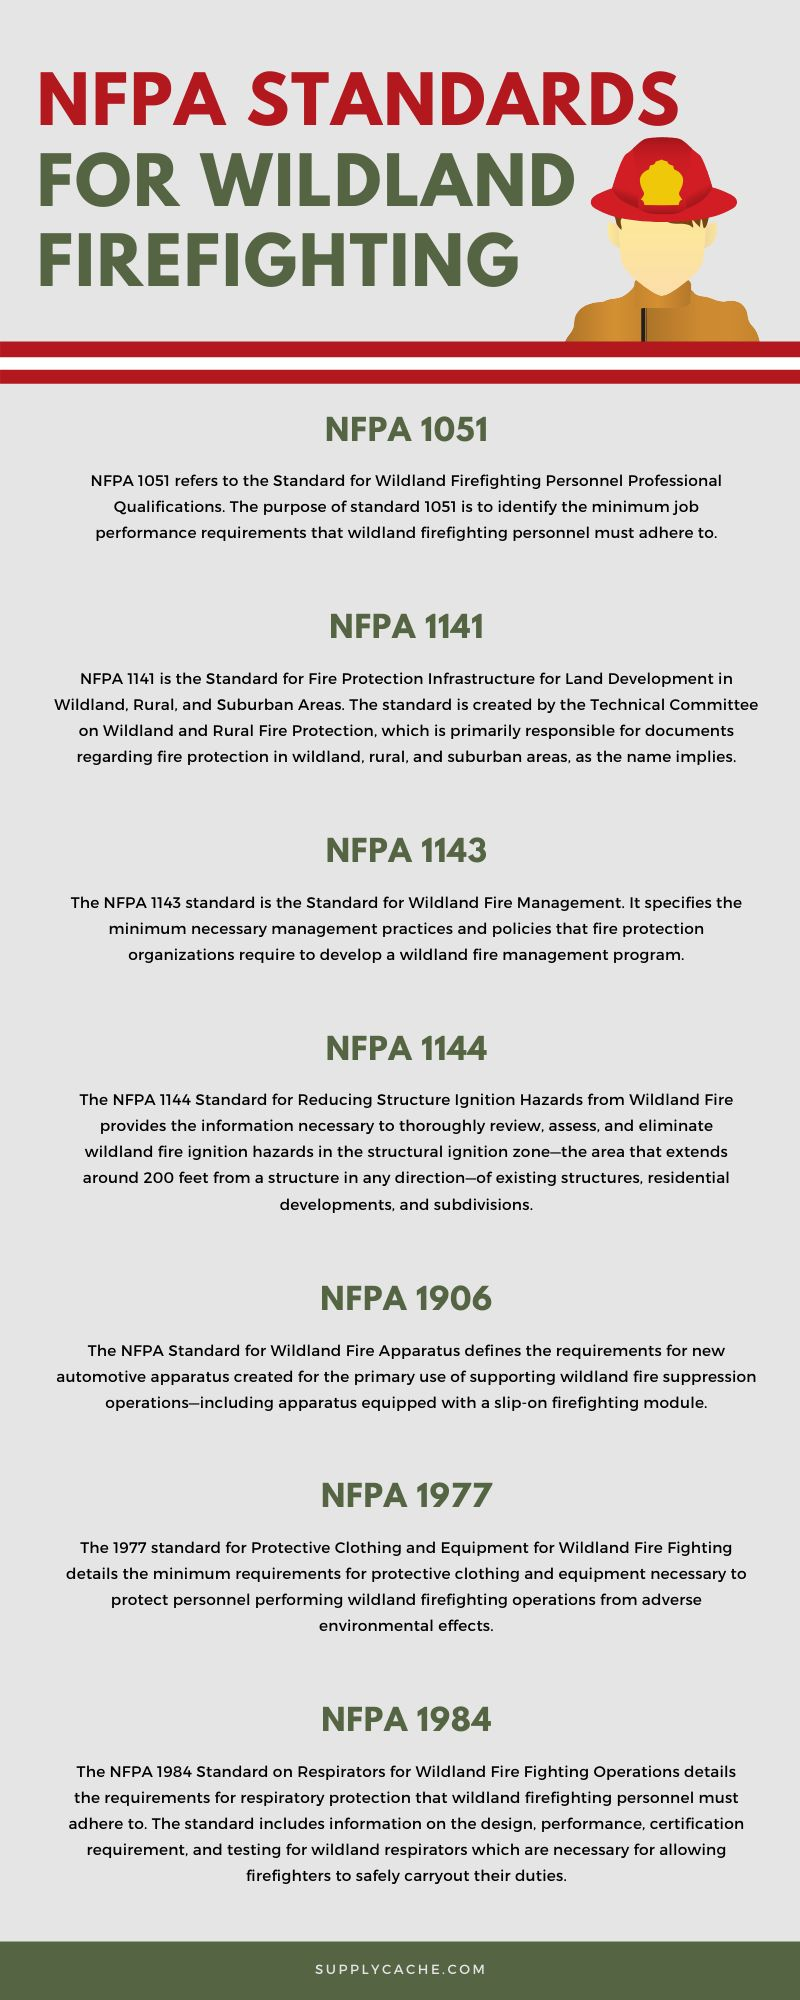 NFPA Standards for Wildland Firefighting